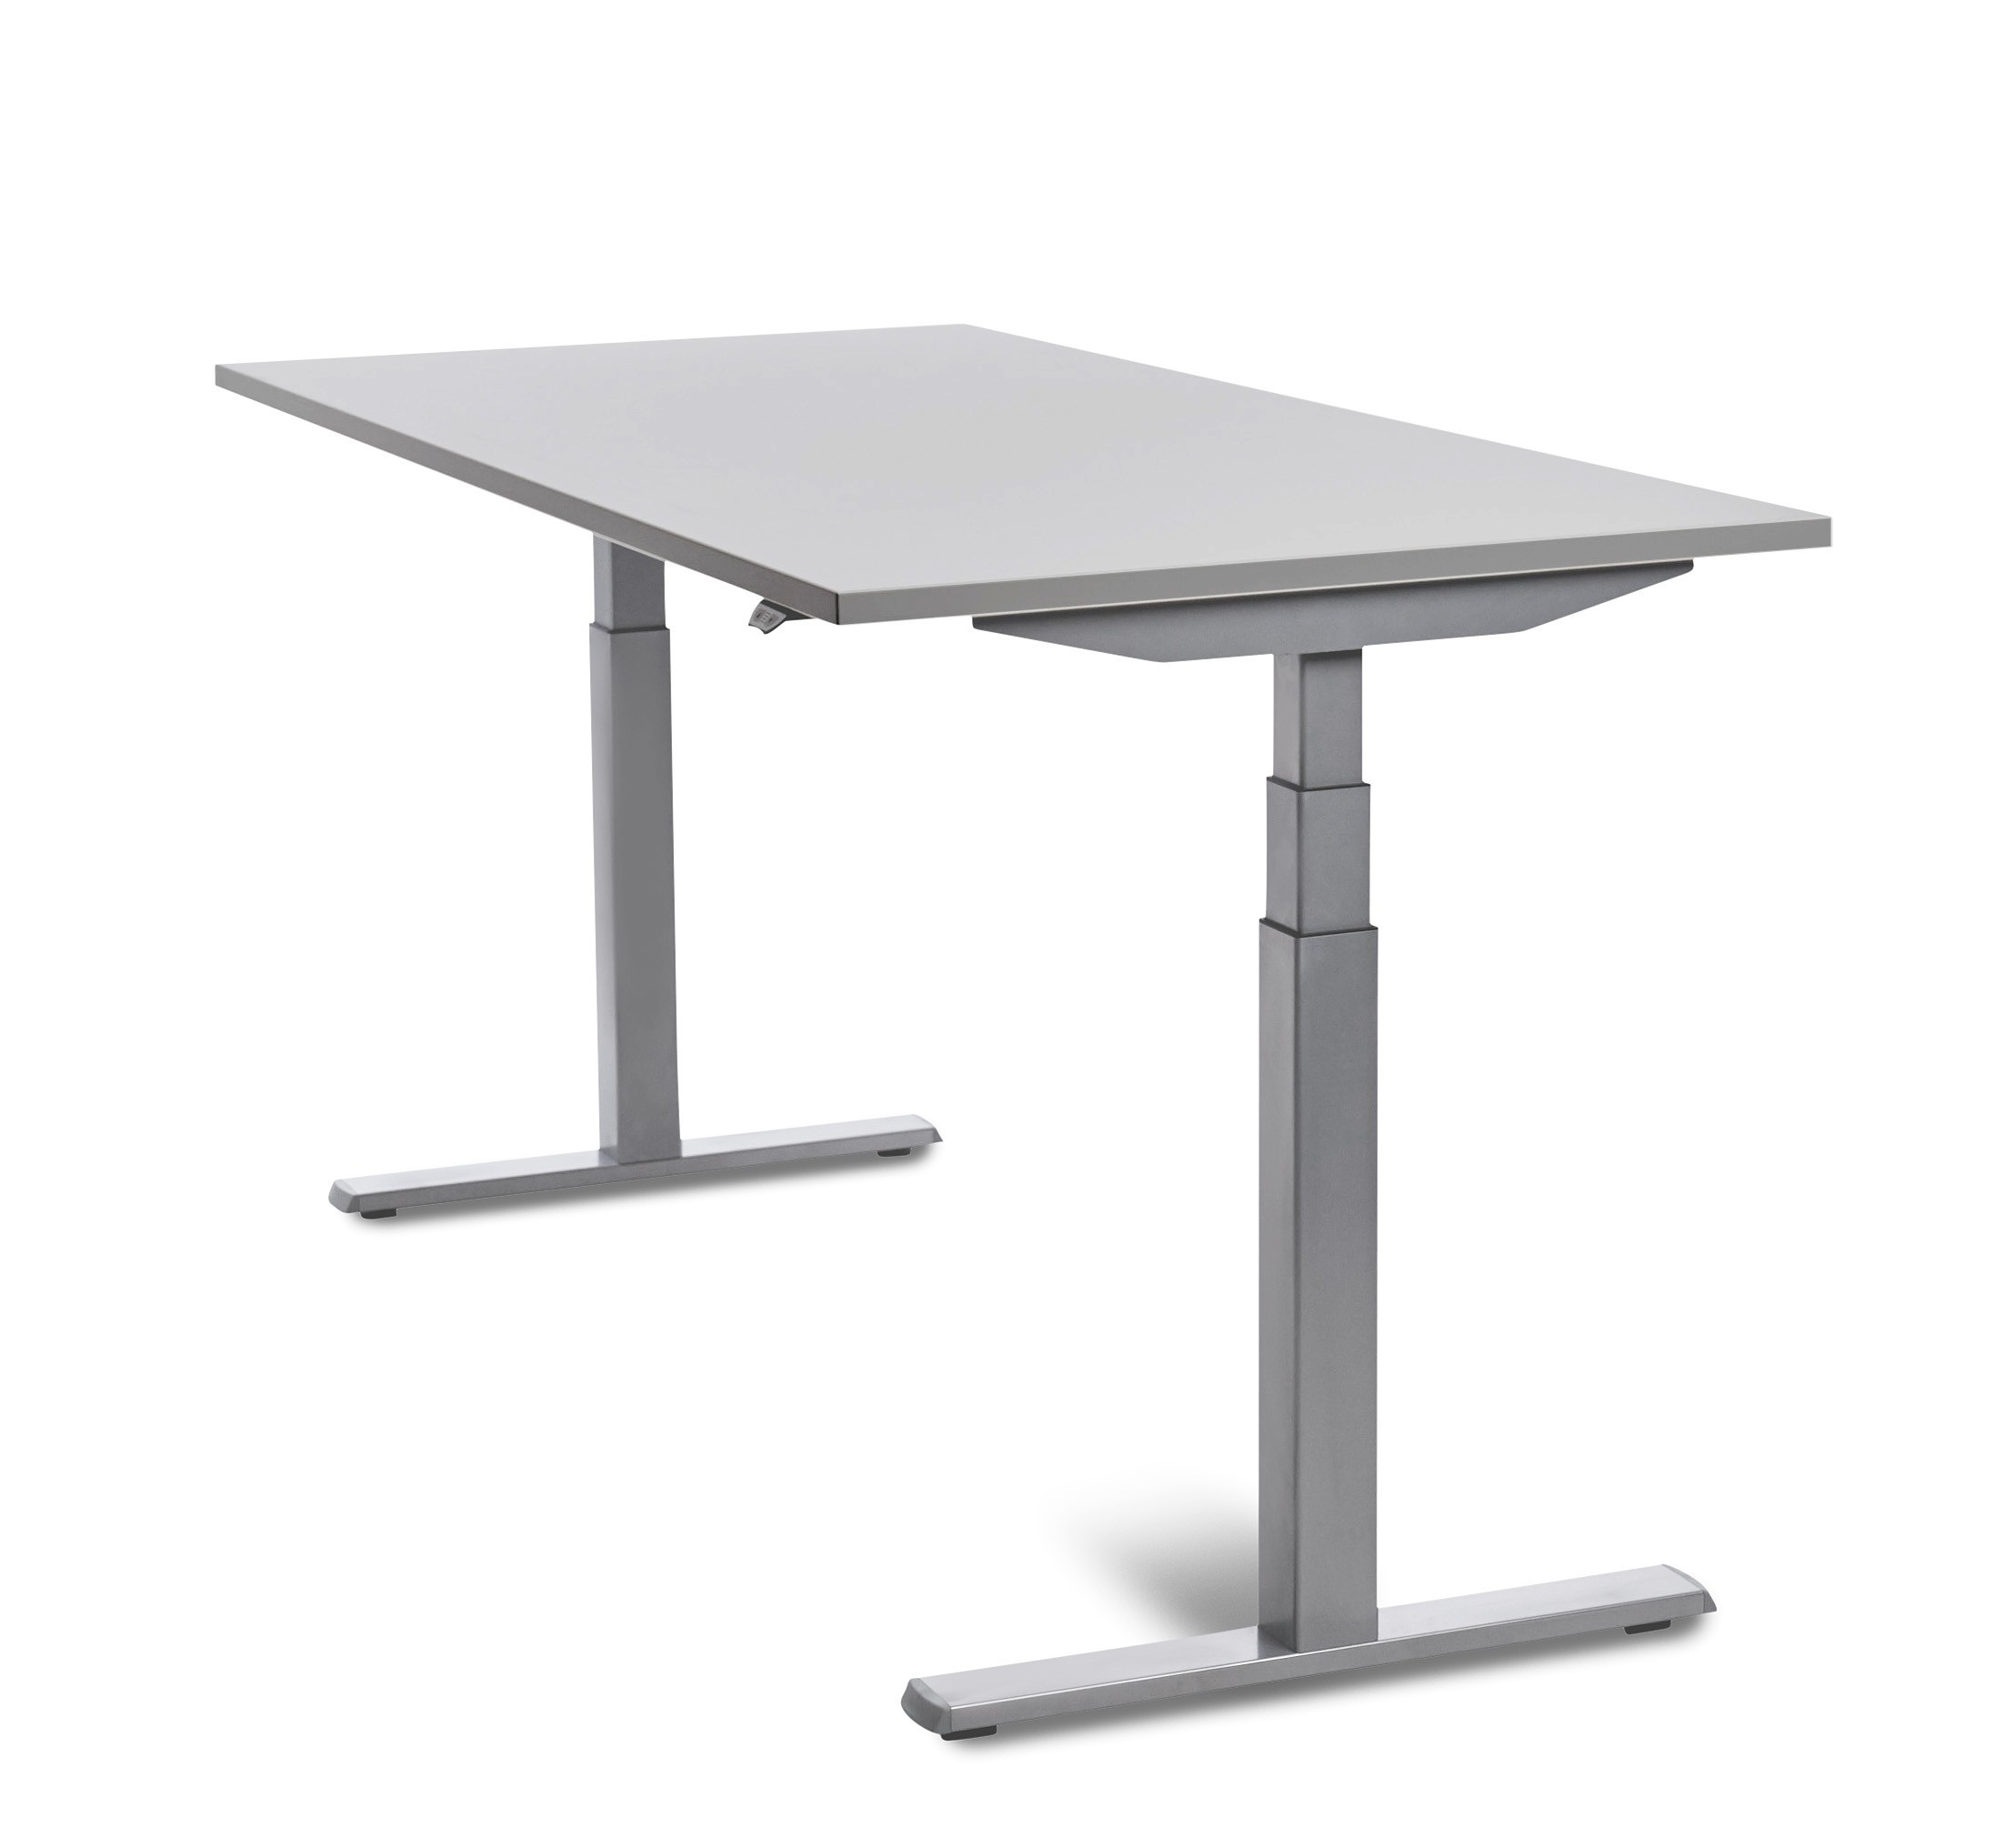 180cm HEIGHT ADJUSTABLE ELECTRICALLY DASH TABLE COLOR GREY